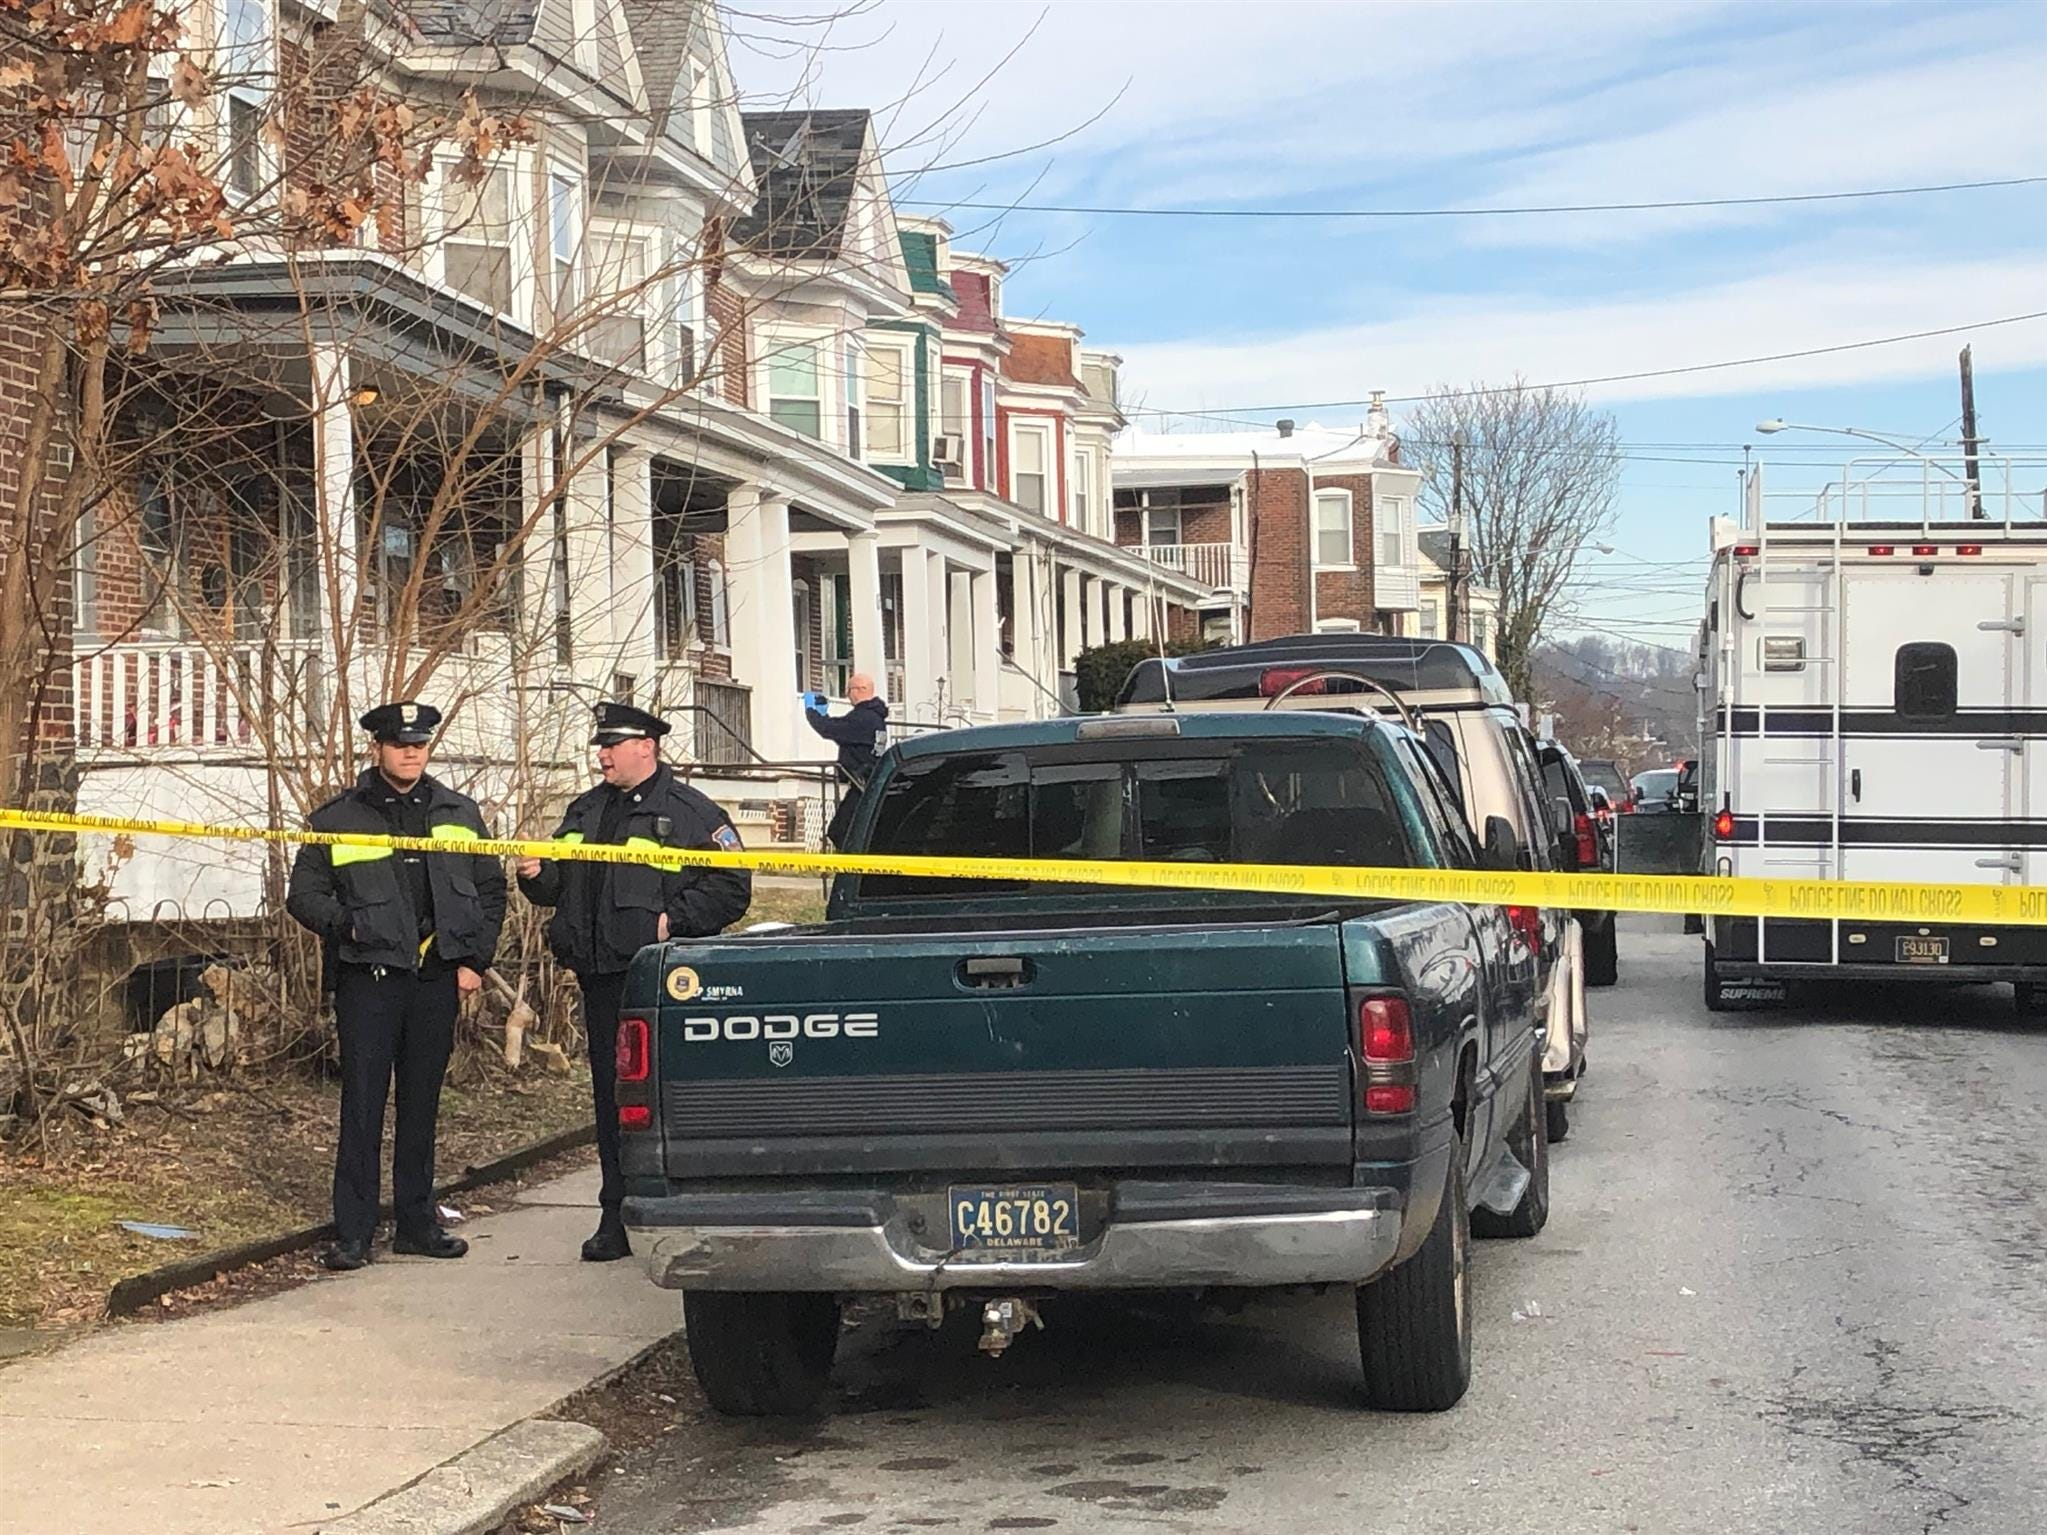 Wilmington police are on the scene of a double homicide that happened before sunrise on Monday, March 11, 2019.